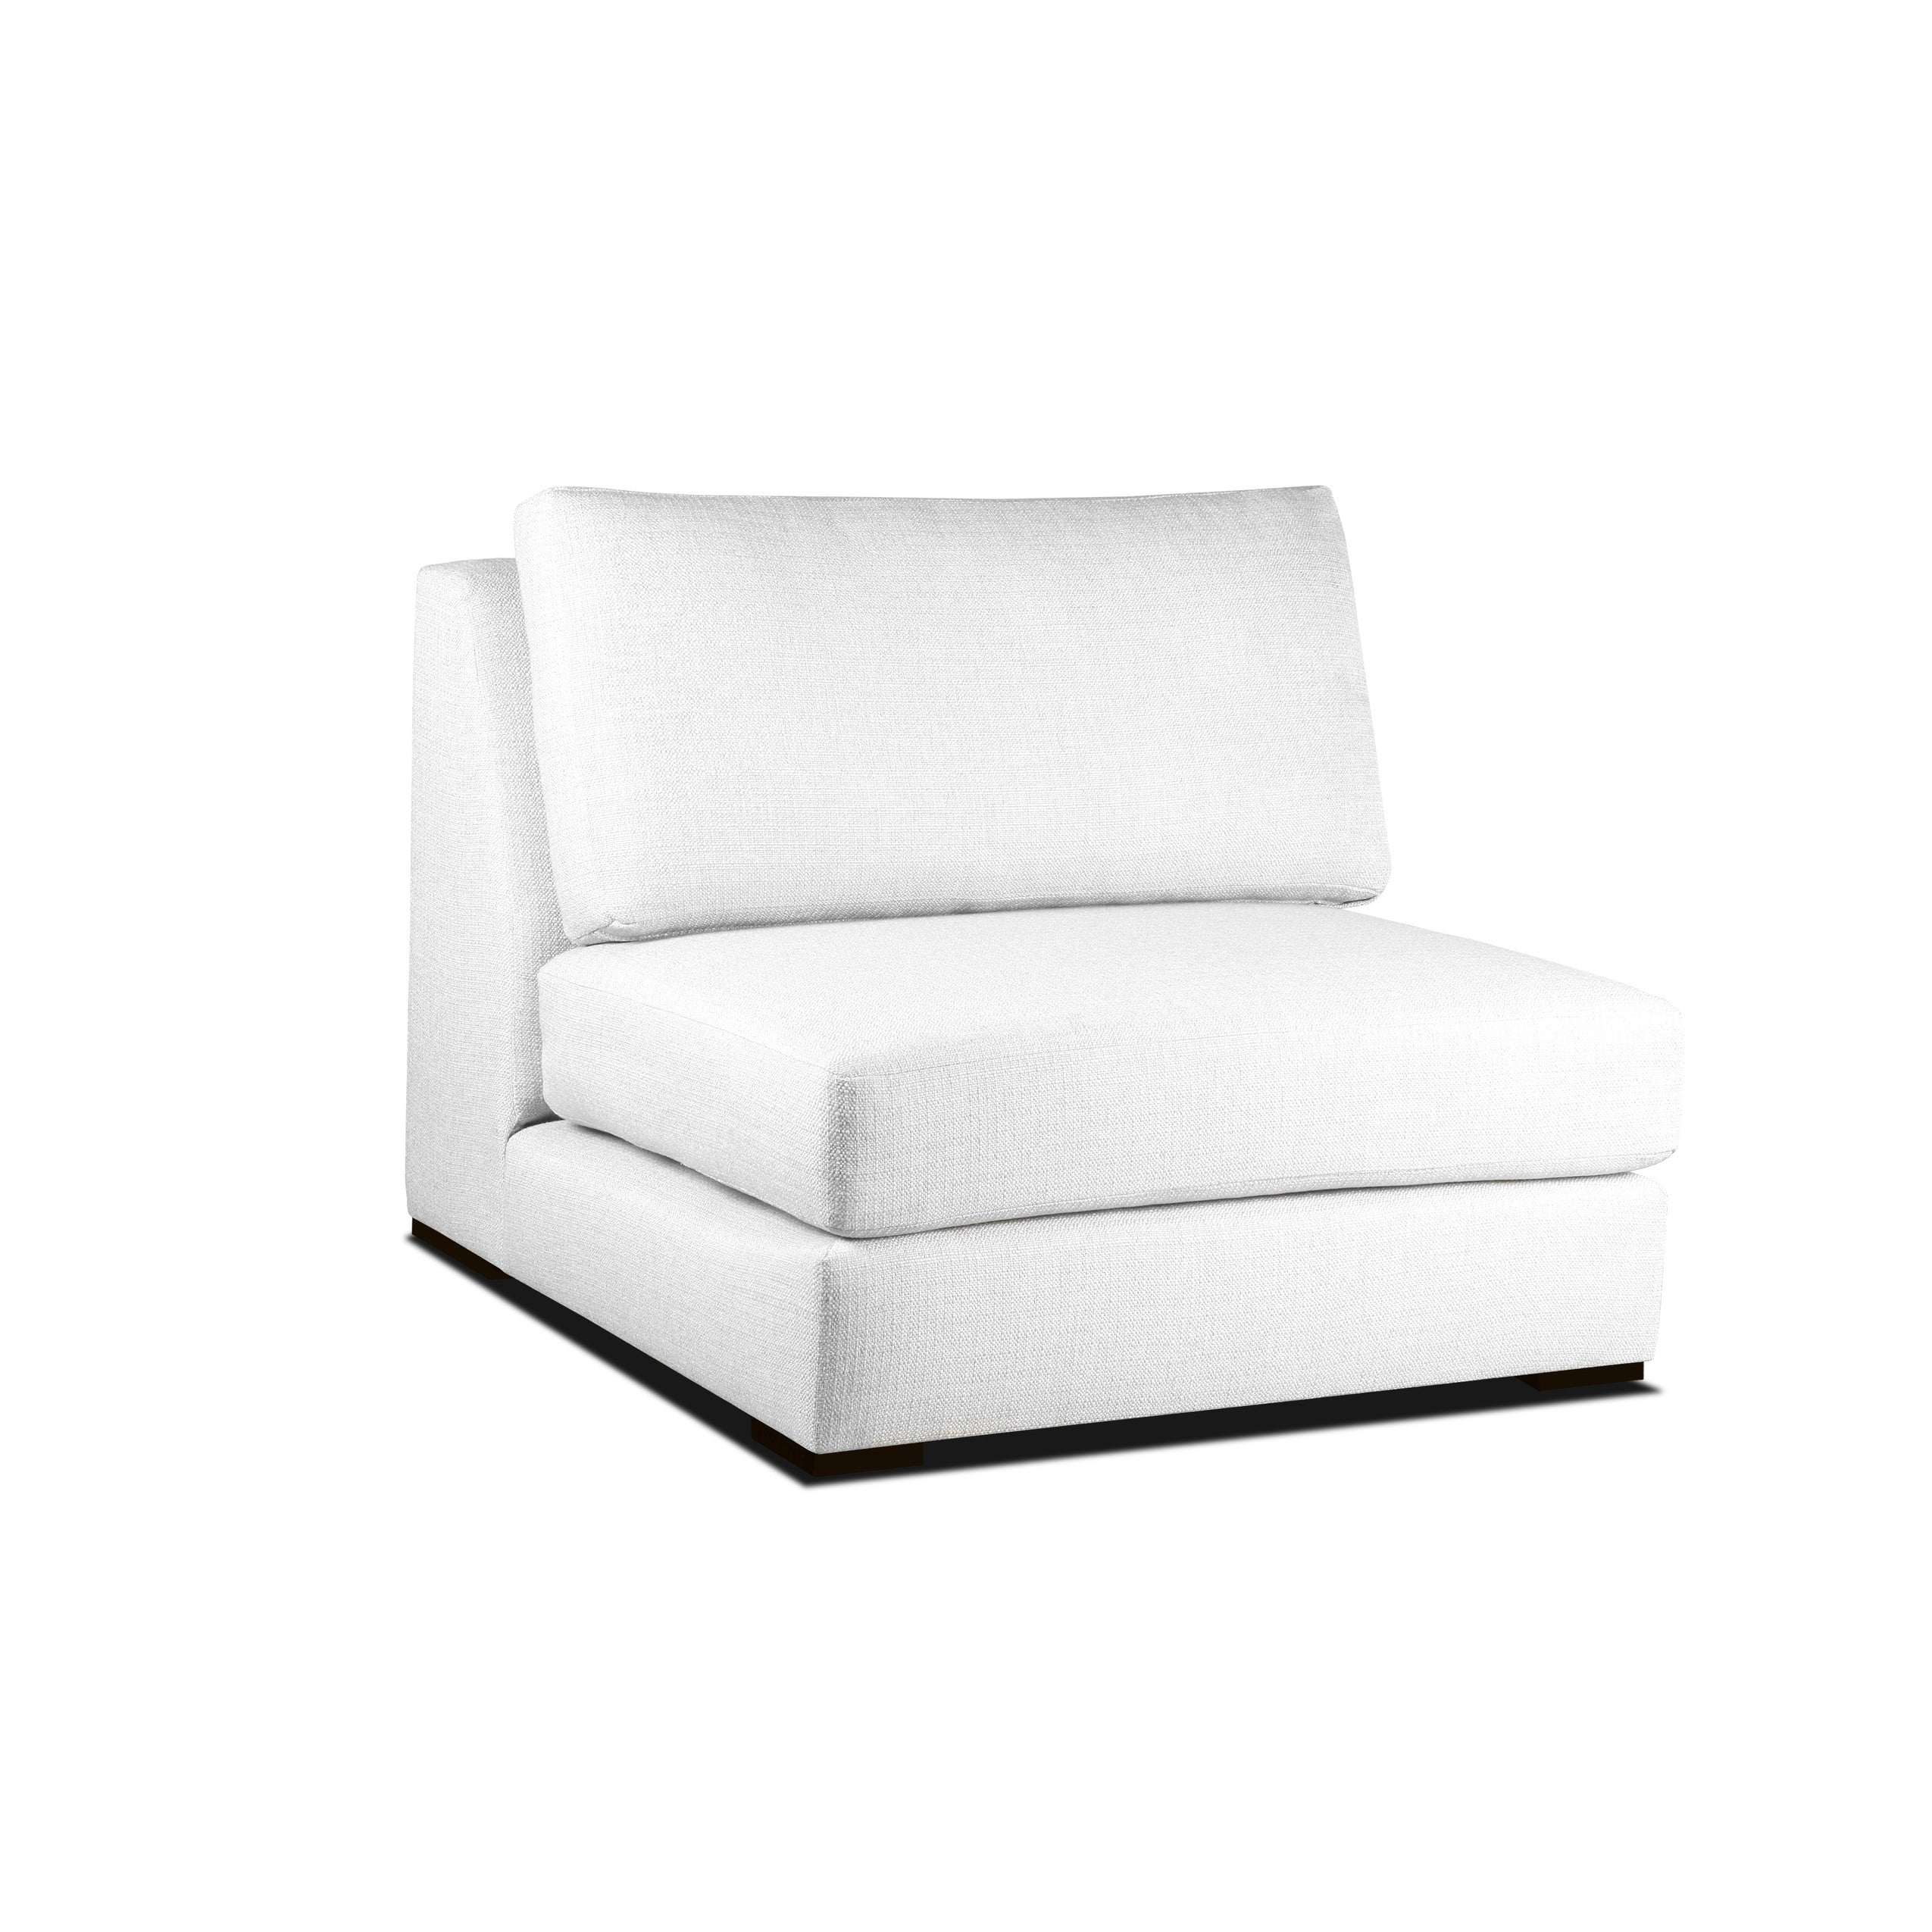 Shop Mayfair Modular Sectional Right And Left Arms L Shape Standard